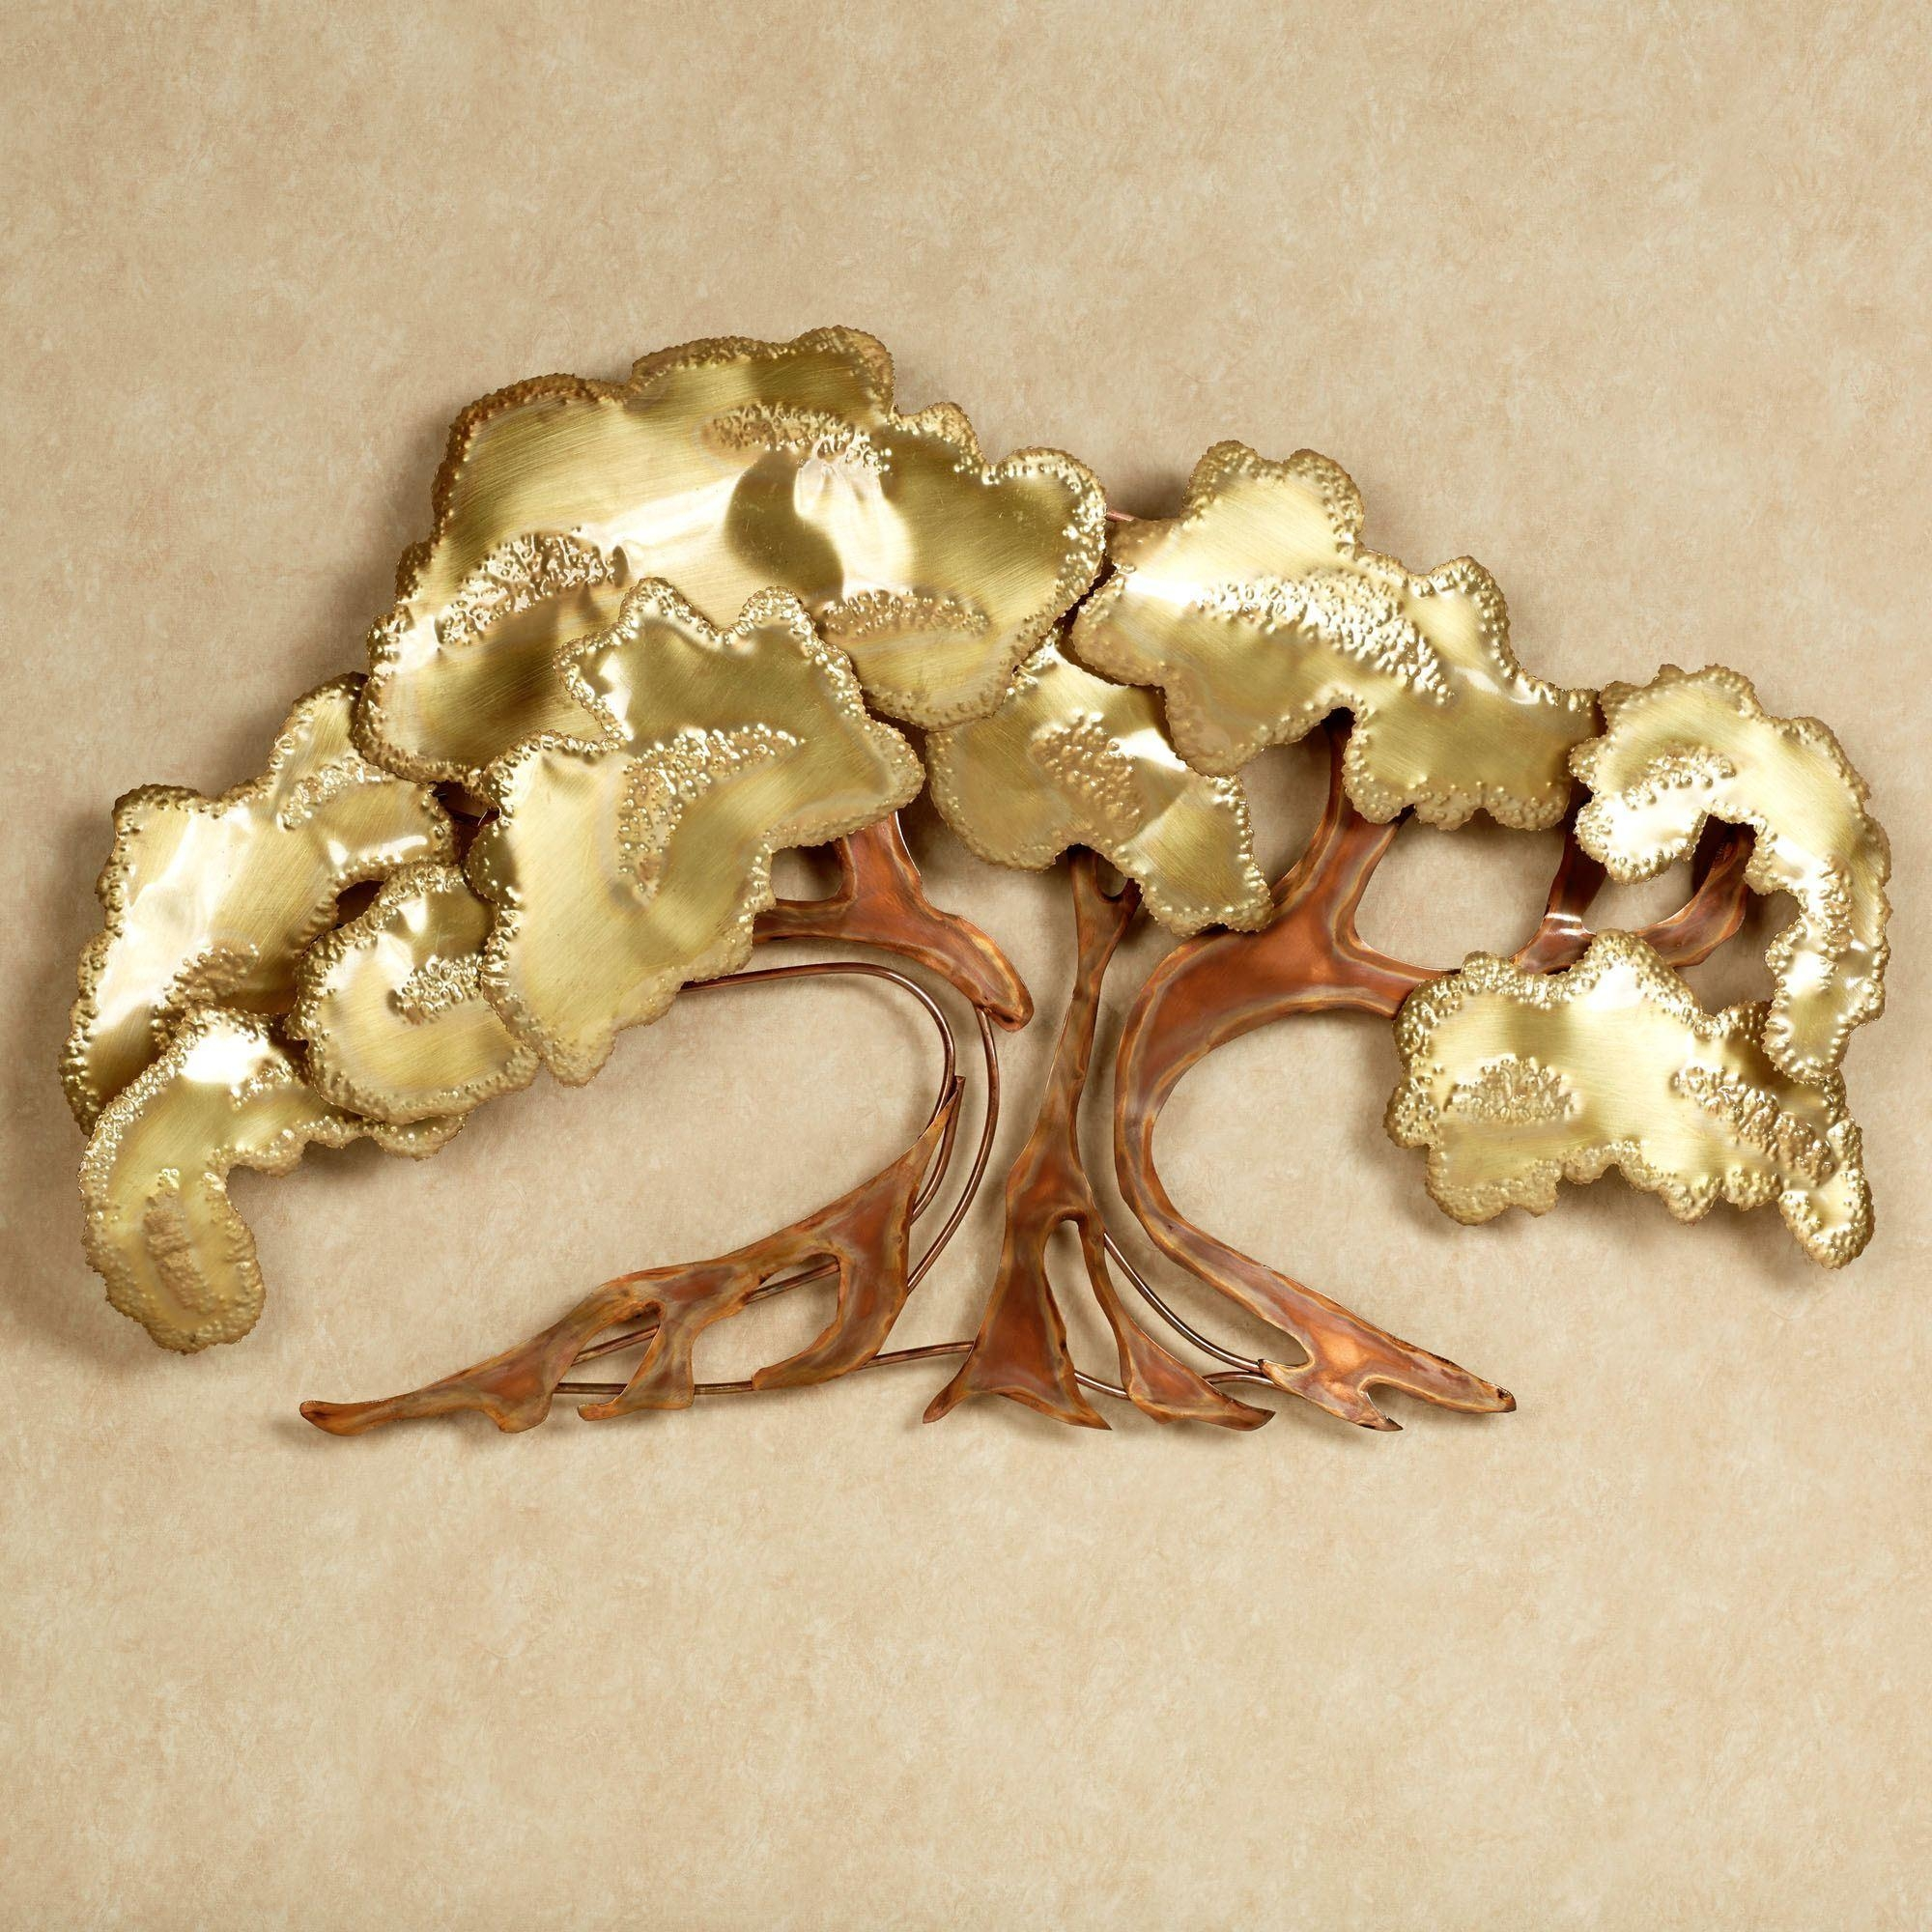 Zen Tree Metal Wall Sculpture with Tree Wall Art Sculpture